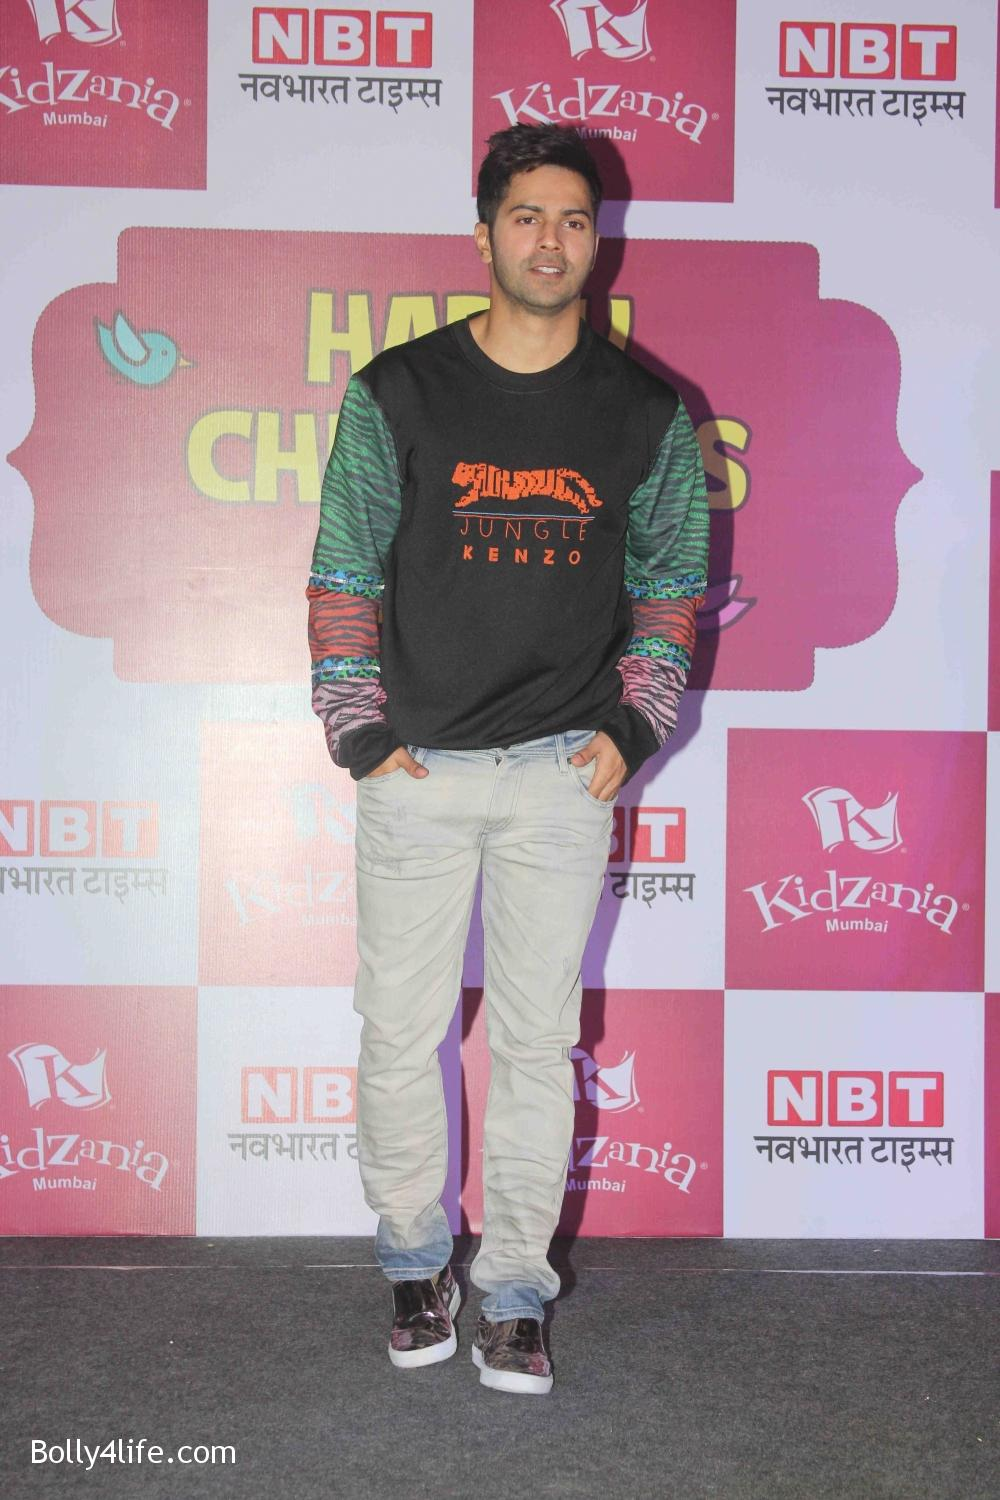 Varun-Dhawan-celebrates-Childrens-Day-at-KidZania-11.jpg